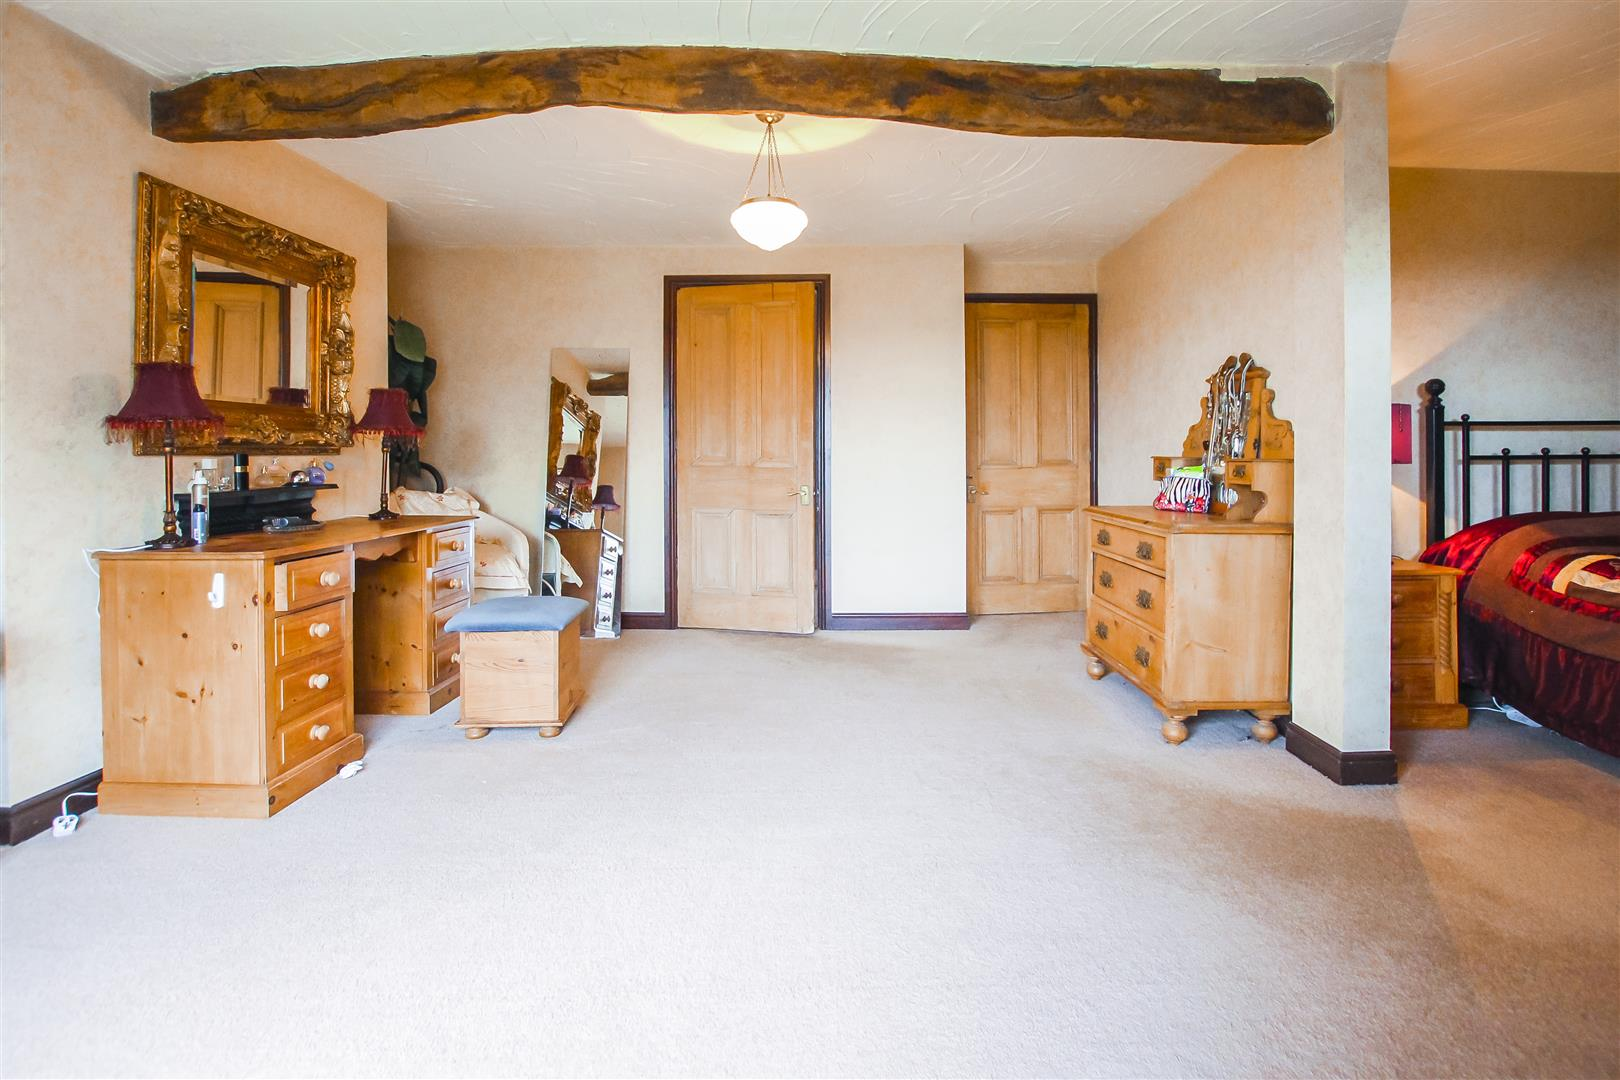 5 Bedroom Barn Conversion For Sale - Image 48